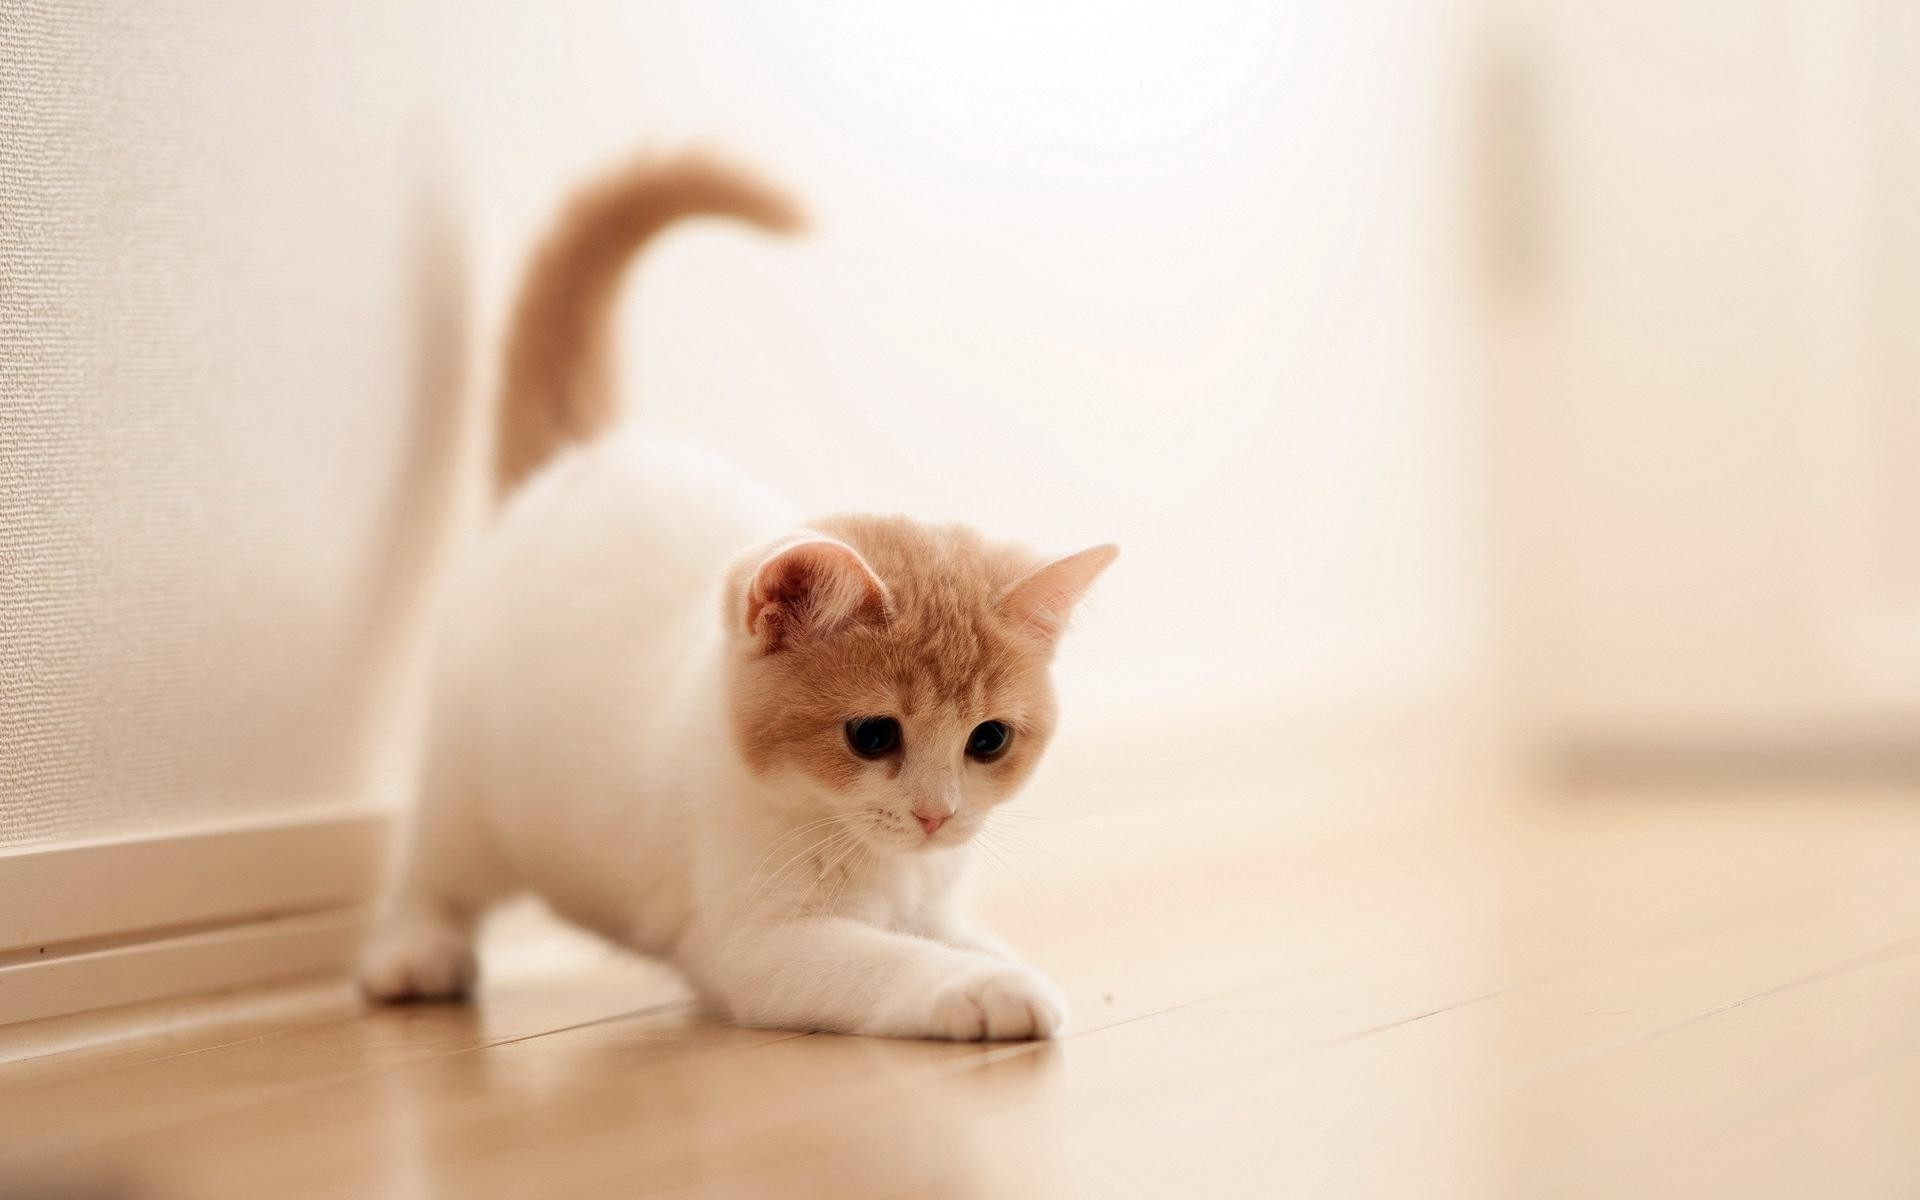 Moving Wallpapers For Iphone 7 Cute Cats Wallpaper 63 Images